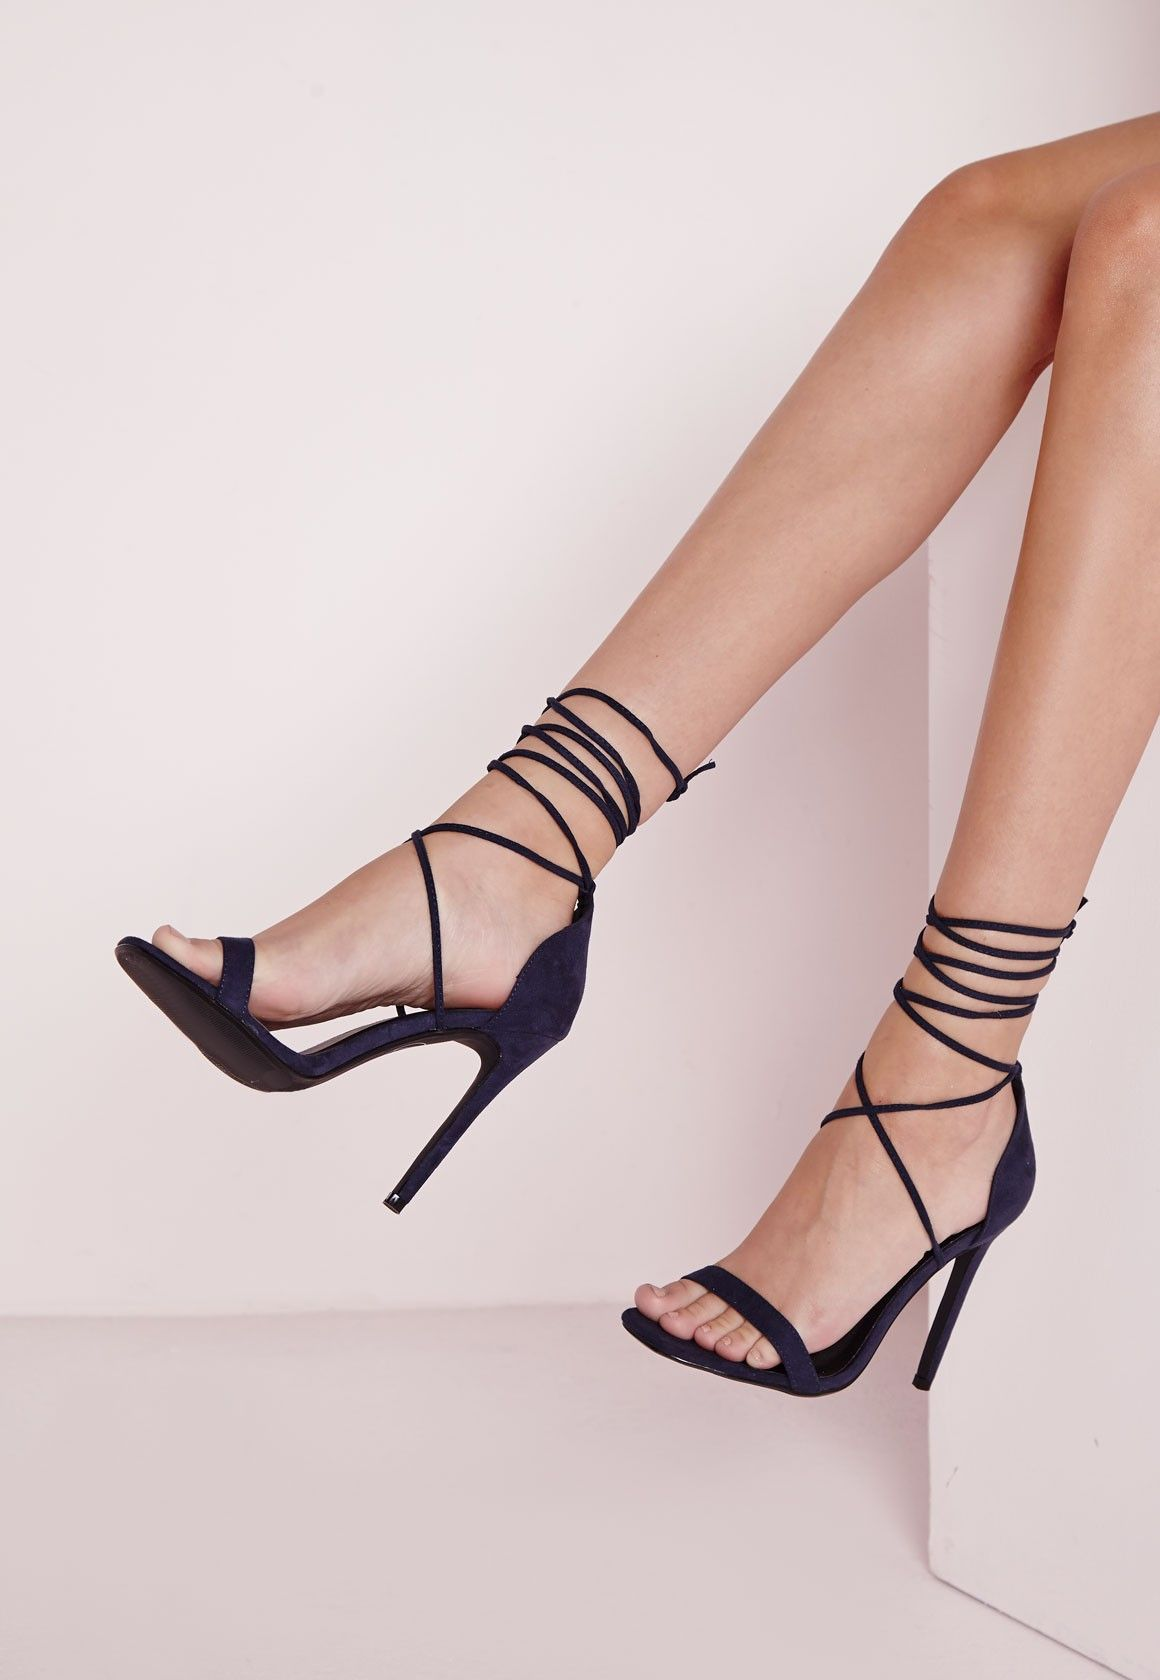 Prom shoes, High heel shoes, Sandals heels